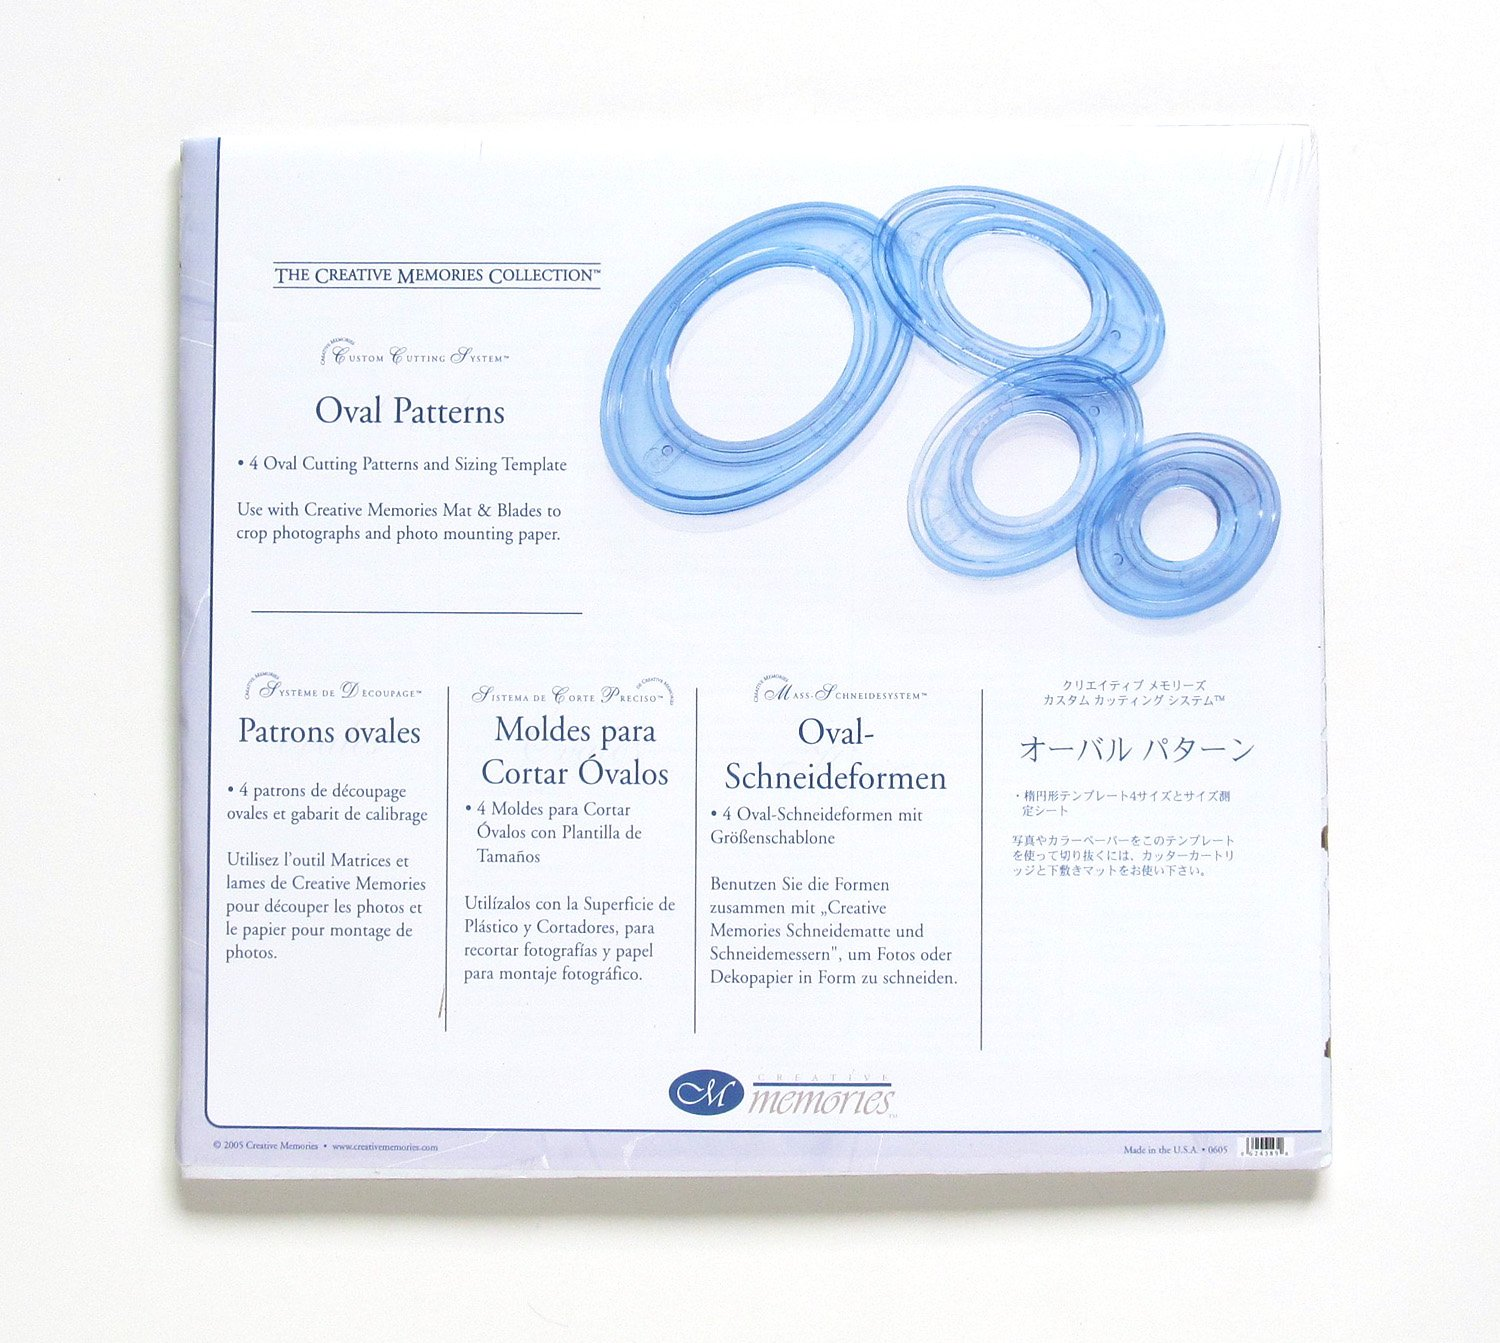 Amazon.com: Creative Memories Custom Cutting System - 4 Oval Cutting Patterns and Sizing Template: Everything Else